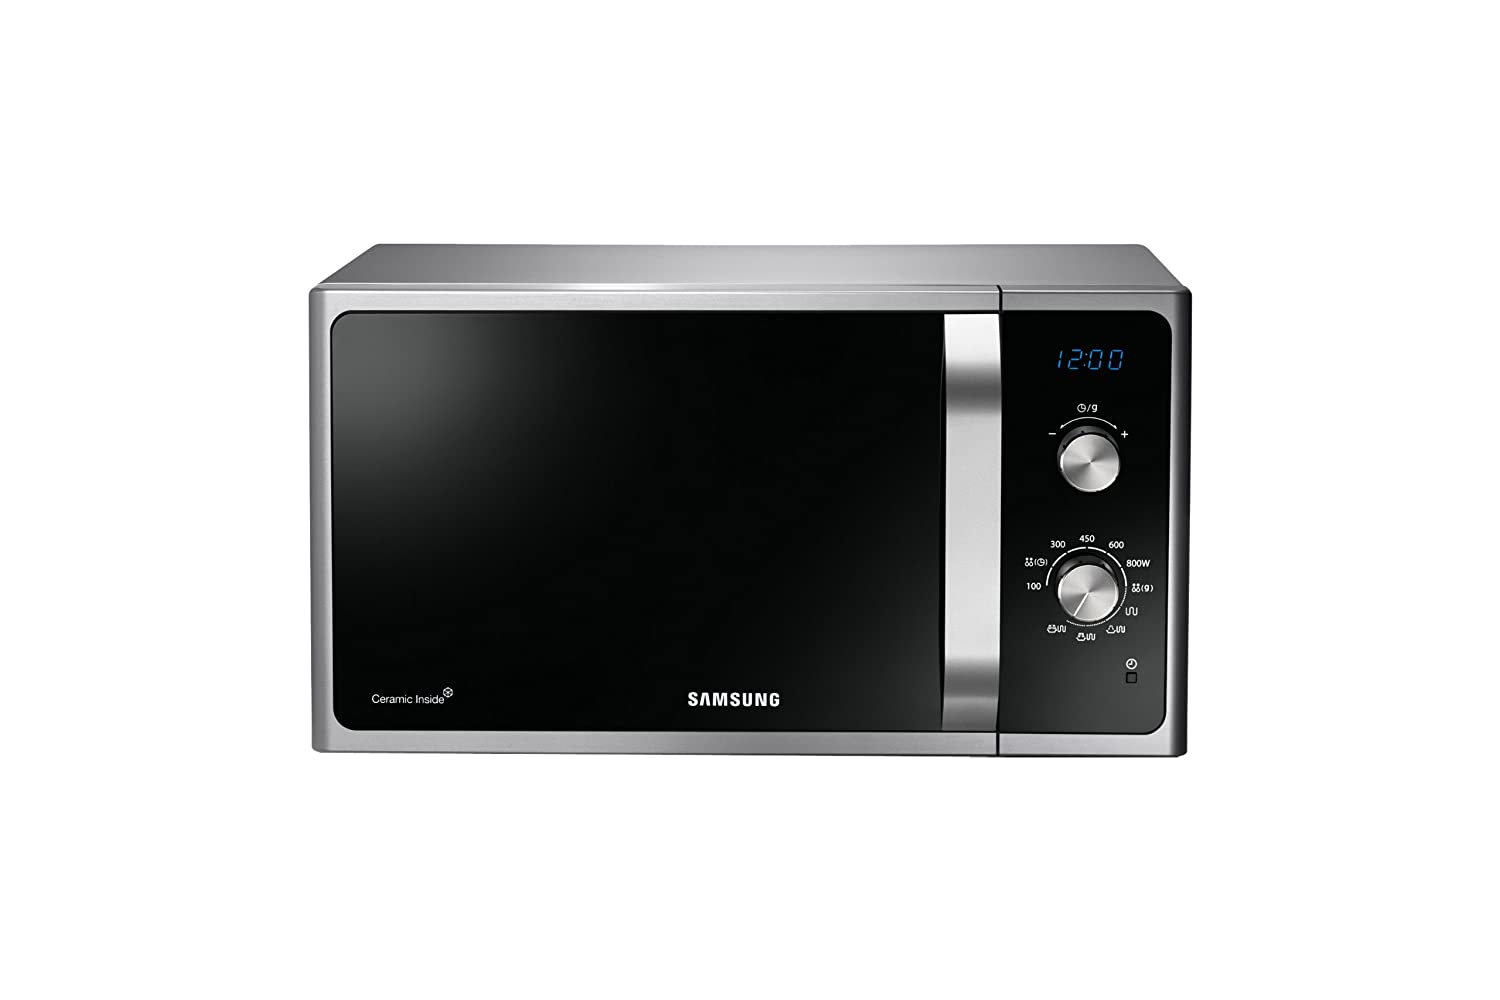 Samsung MG23F301EAS 23L 800W Acero inoxidable - Microondas (23 L, 800 W, Giratorio, Acero inoxidable, 1200 W, 490 mm): Amazon.es: Hogar